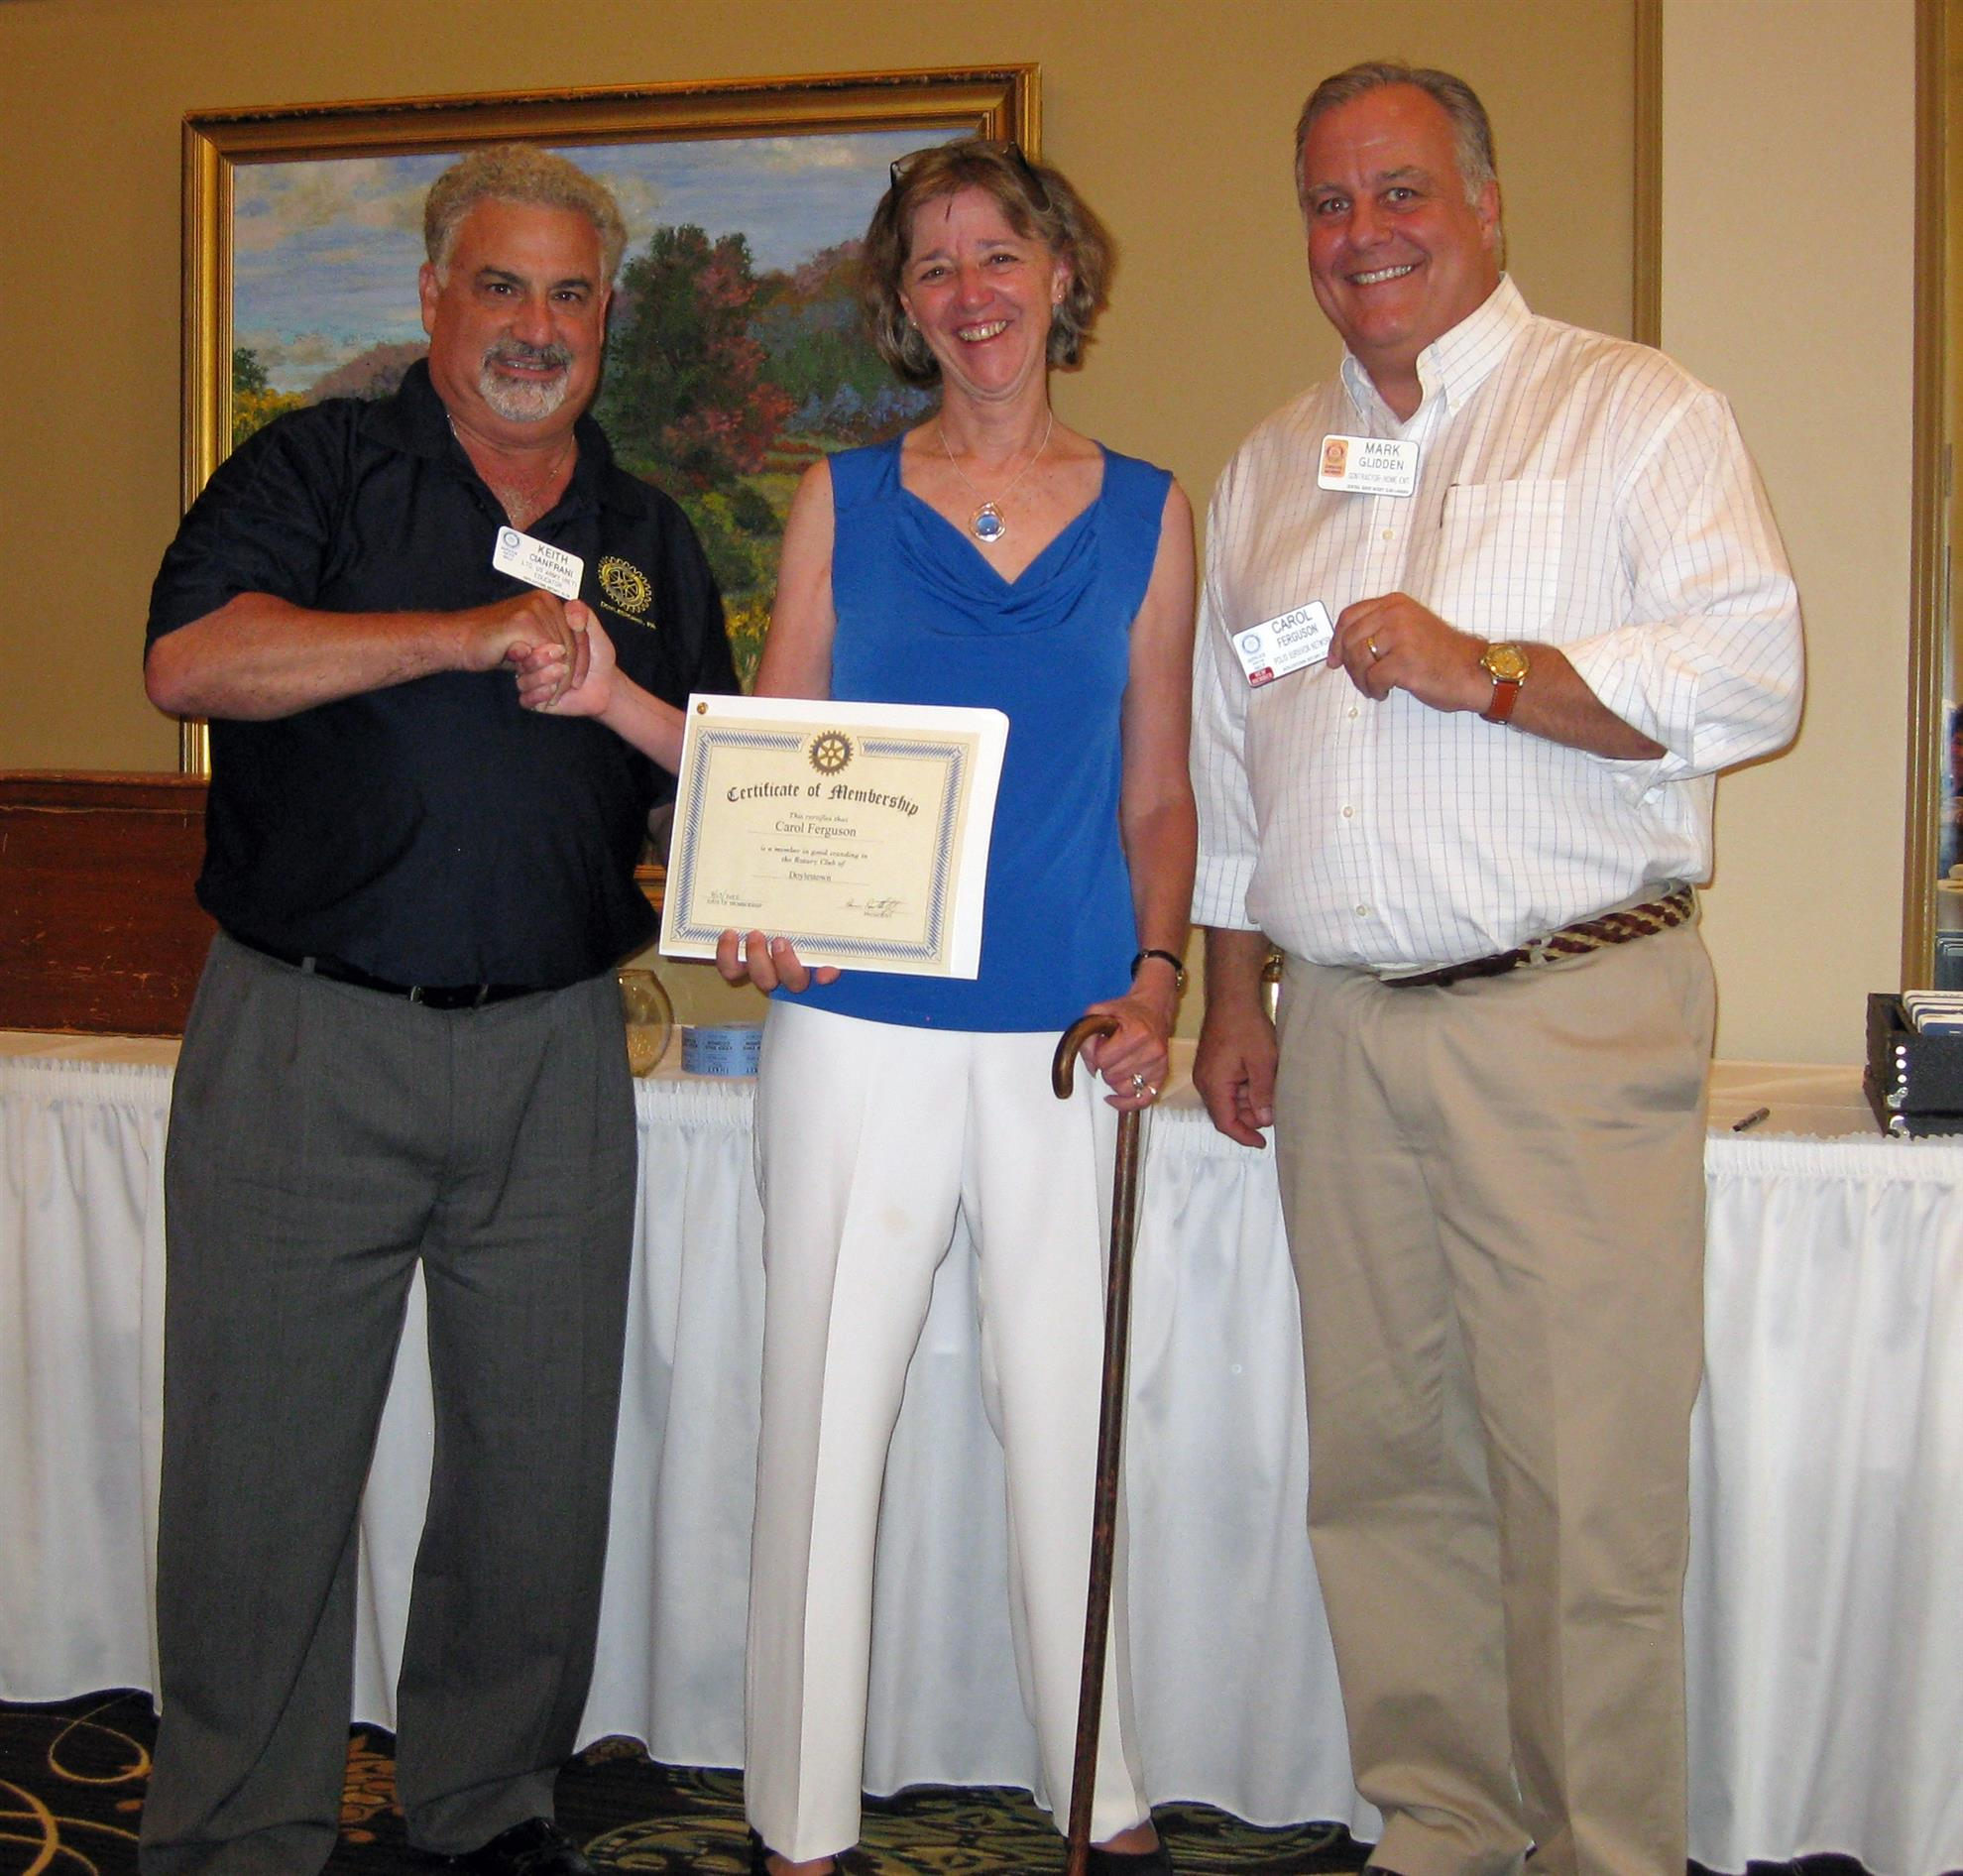 Keith Cianfrani, Carol Ferguson, and Mark Glidden